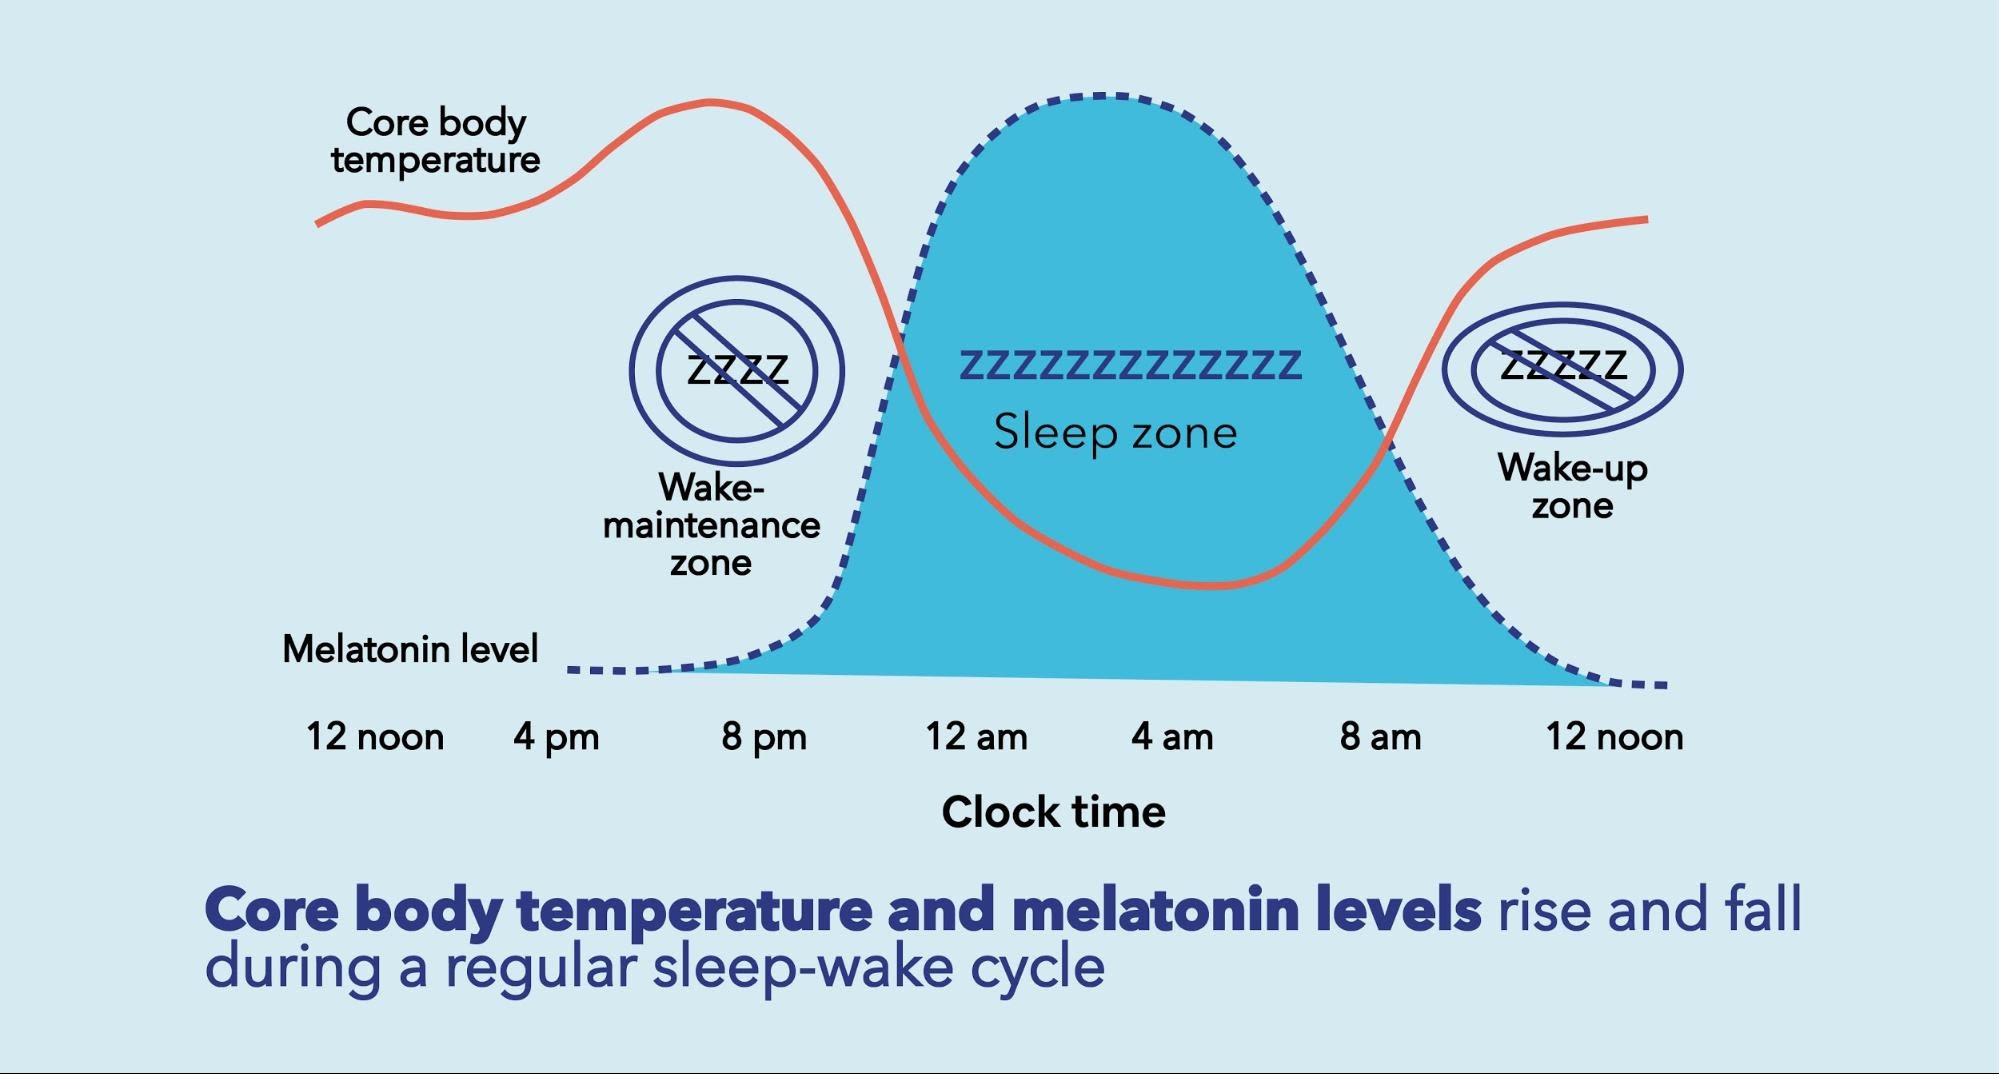 Core body temperature and melatonin levels rise and fall during a regular sleep-wake cycle.